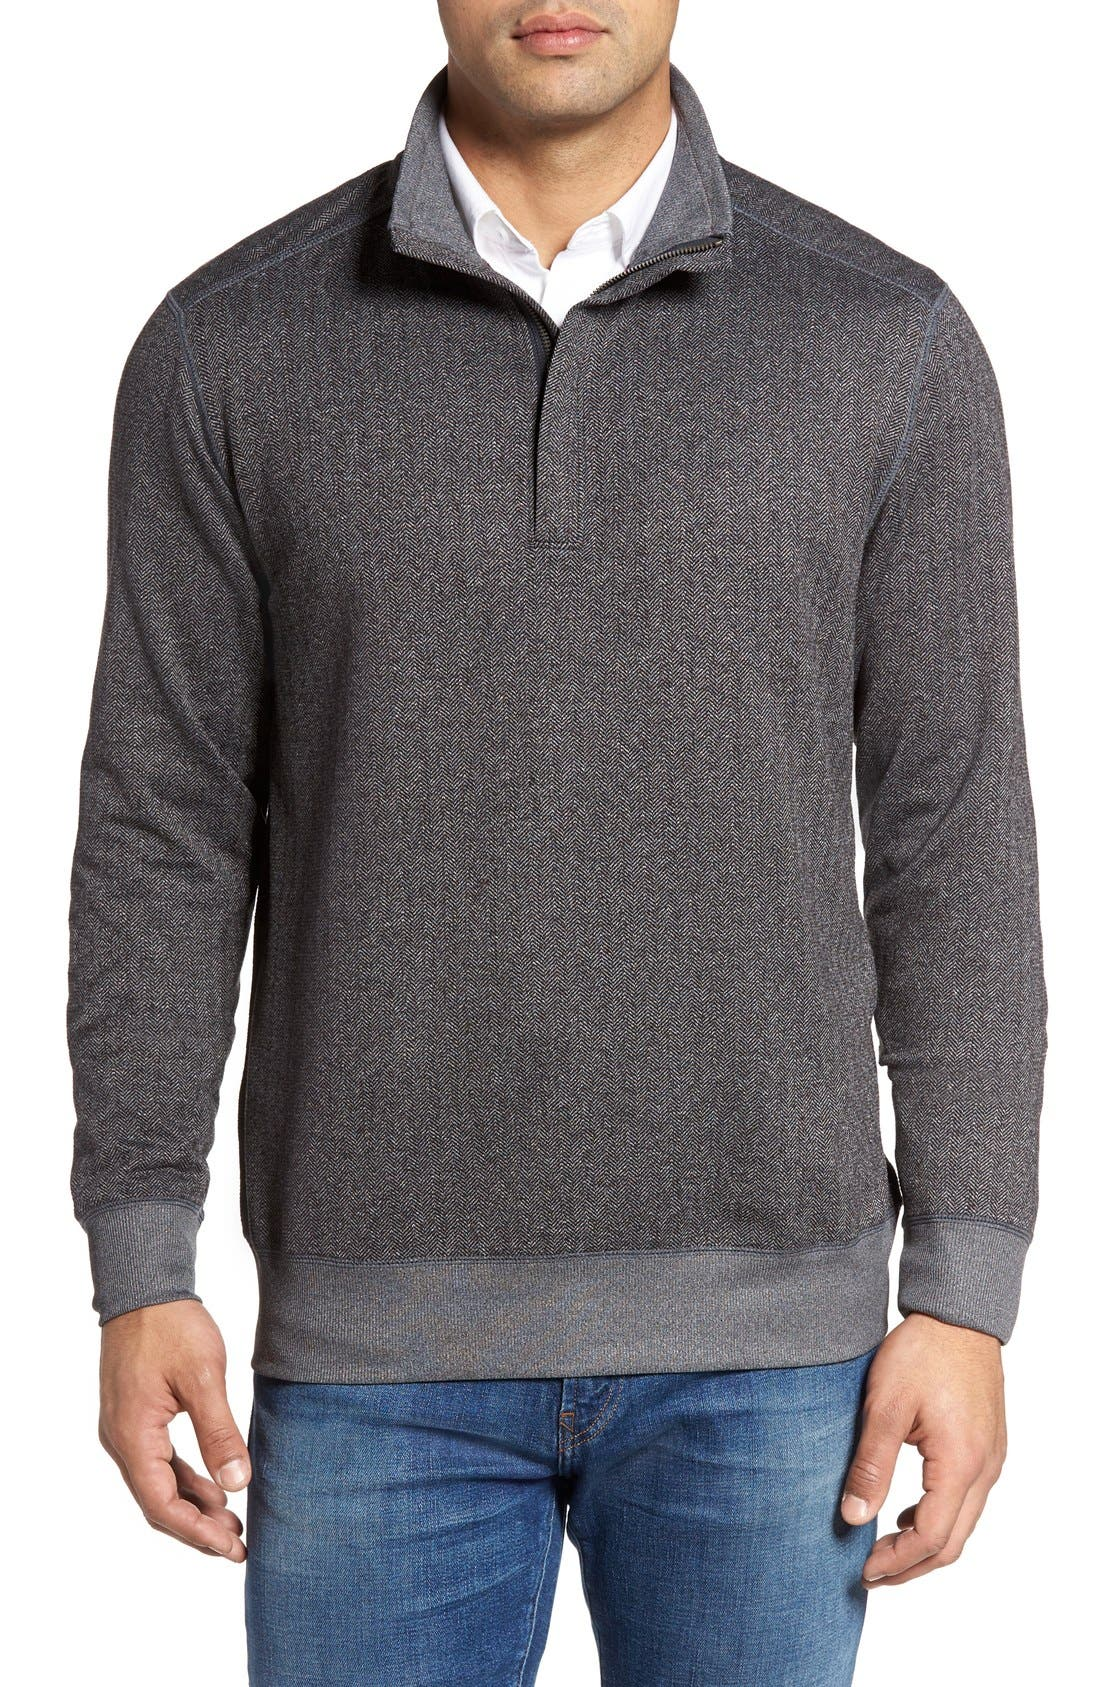 Pro Formance Quarter Zip Sweater,                         Main,                         color, 050